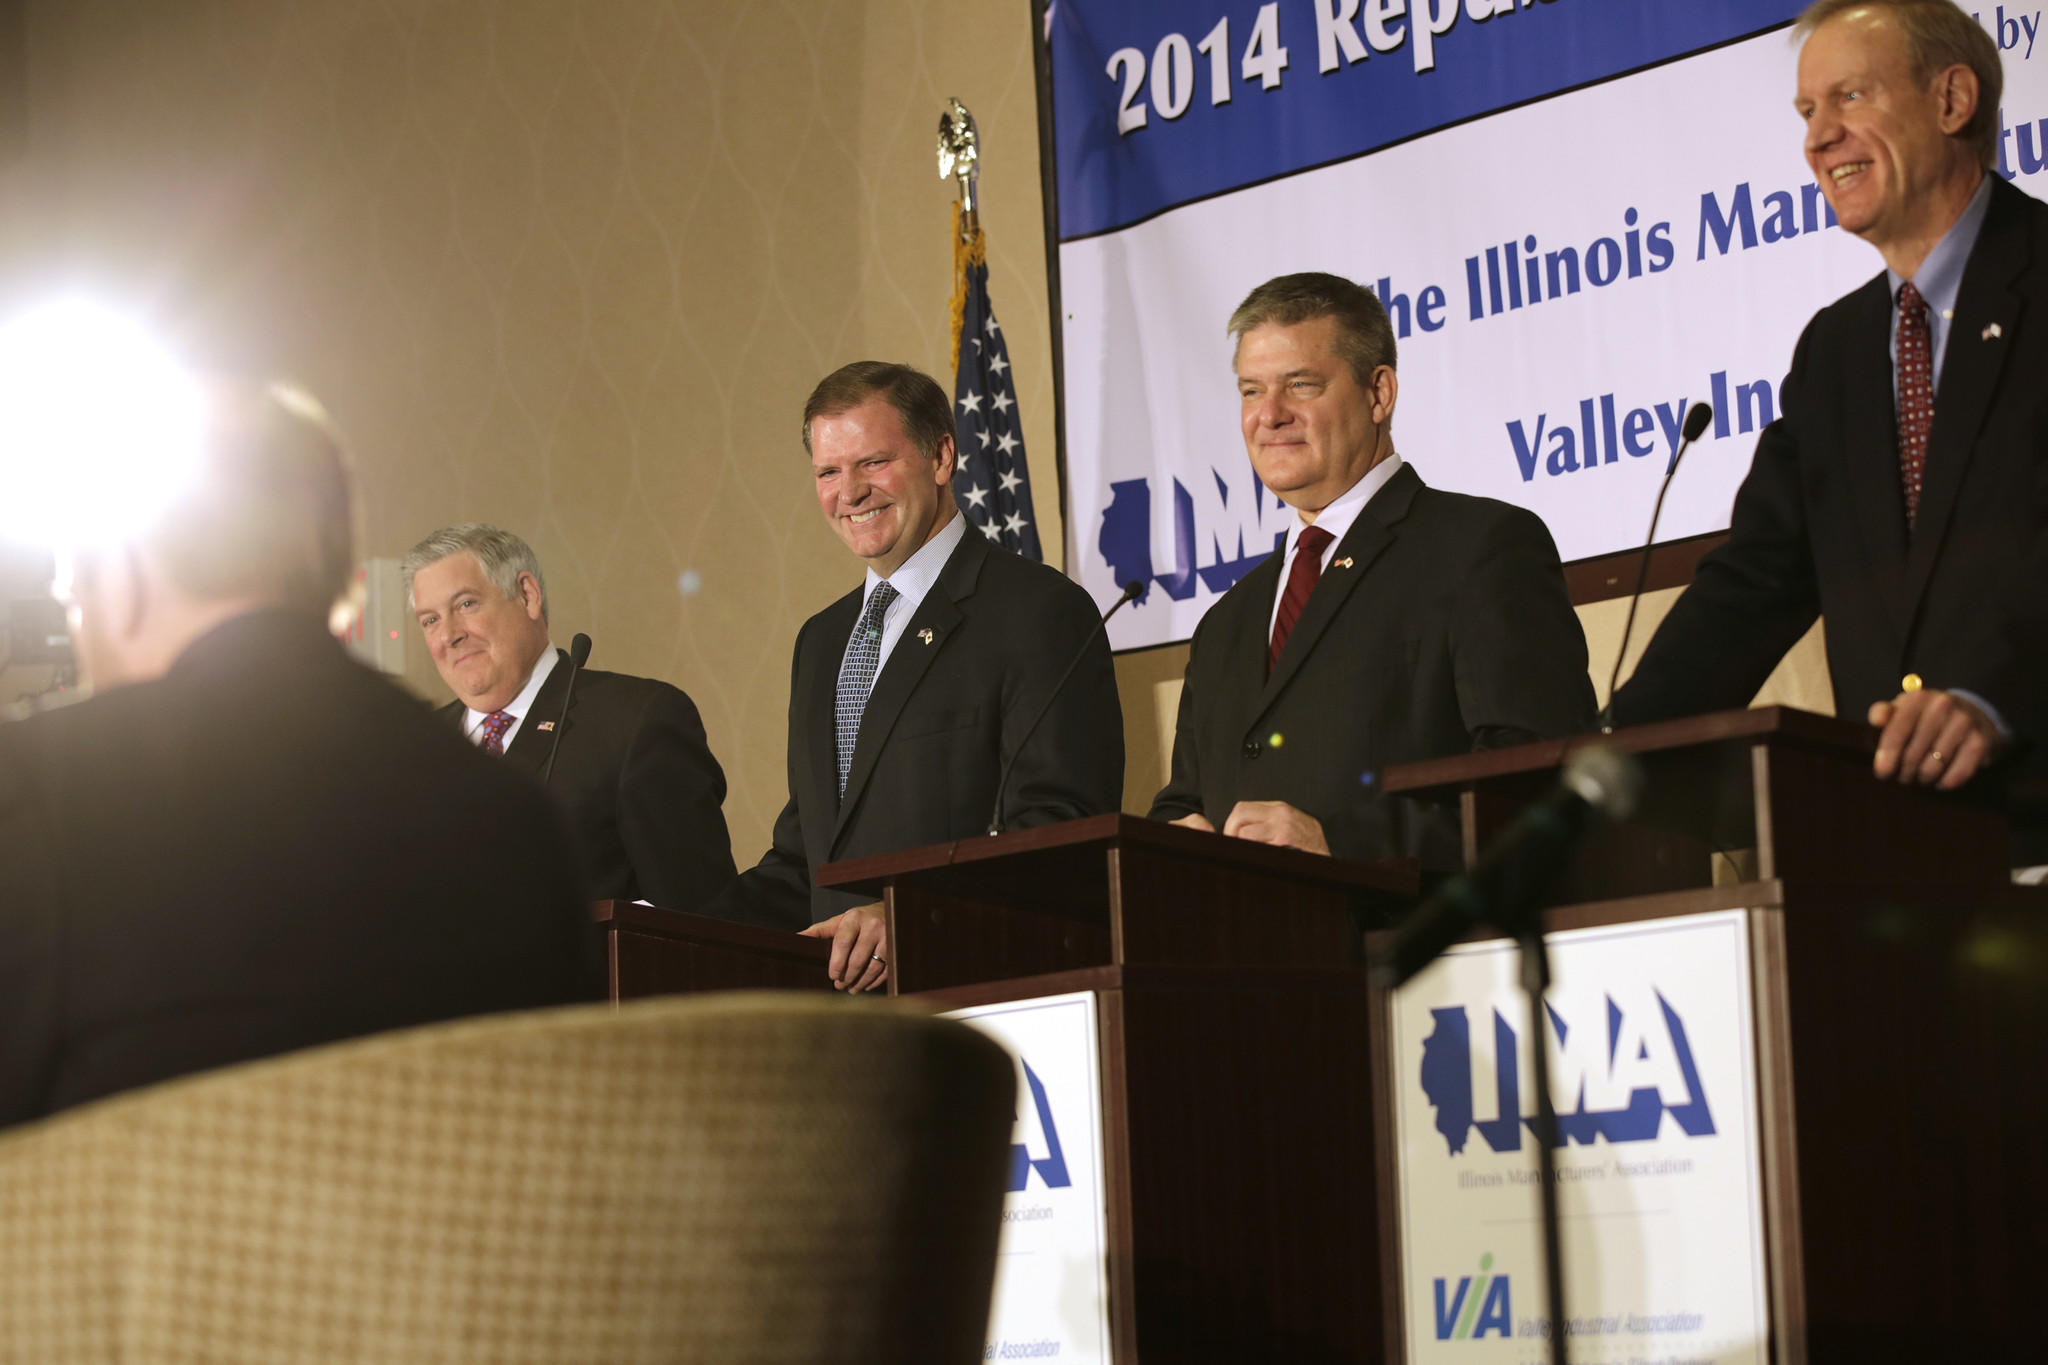 State Senators Kirk Dillard, left, and Bill Brady, Treasurer Dan Rutherford and businessman Bruce Rauner, participate in a 2014 Republican Gubernatorial Debate sponsored by the Illinois Manufacturers' Association and the Valley Industrial Association on Tuesday at the Naperville Marriott.